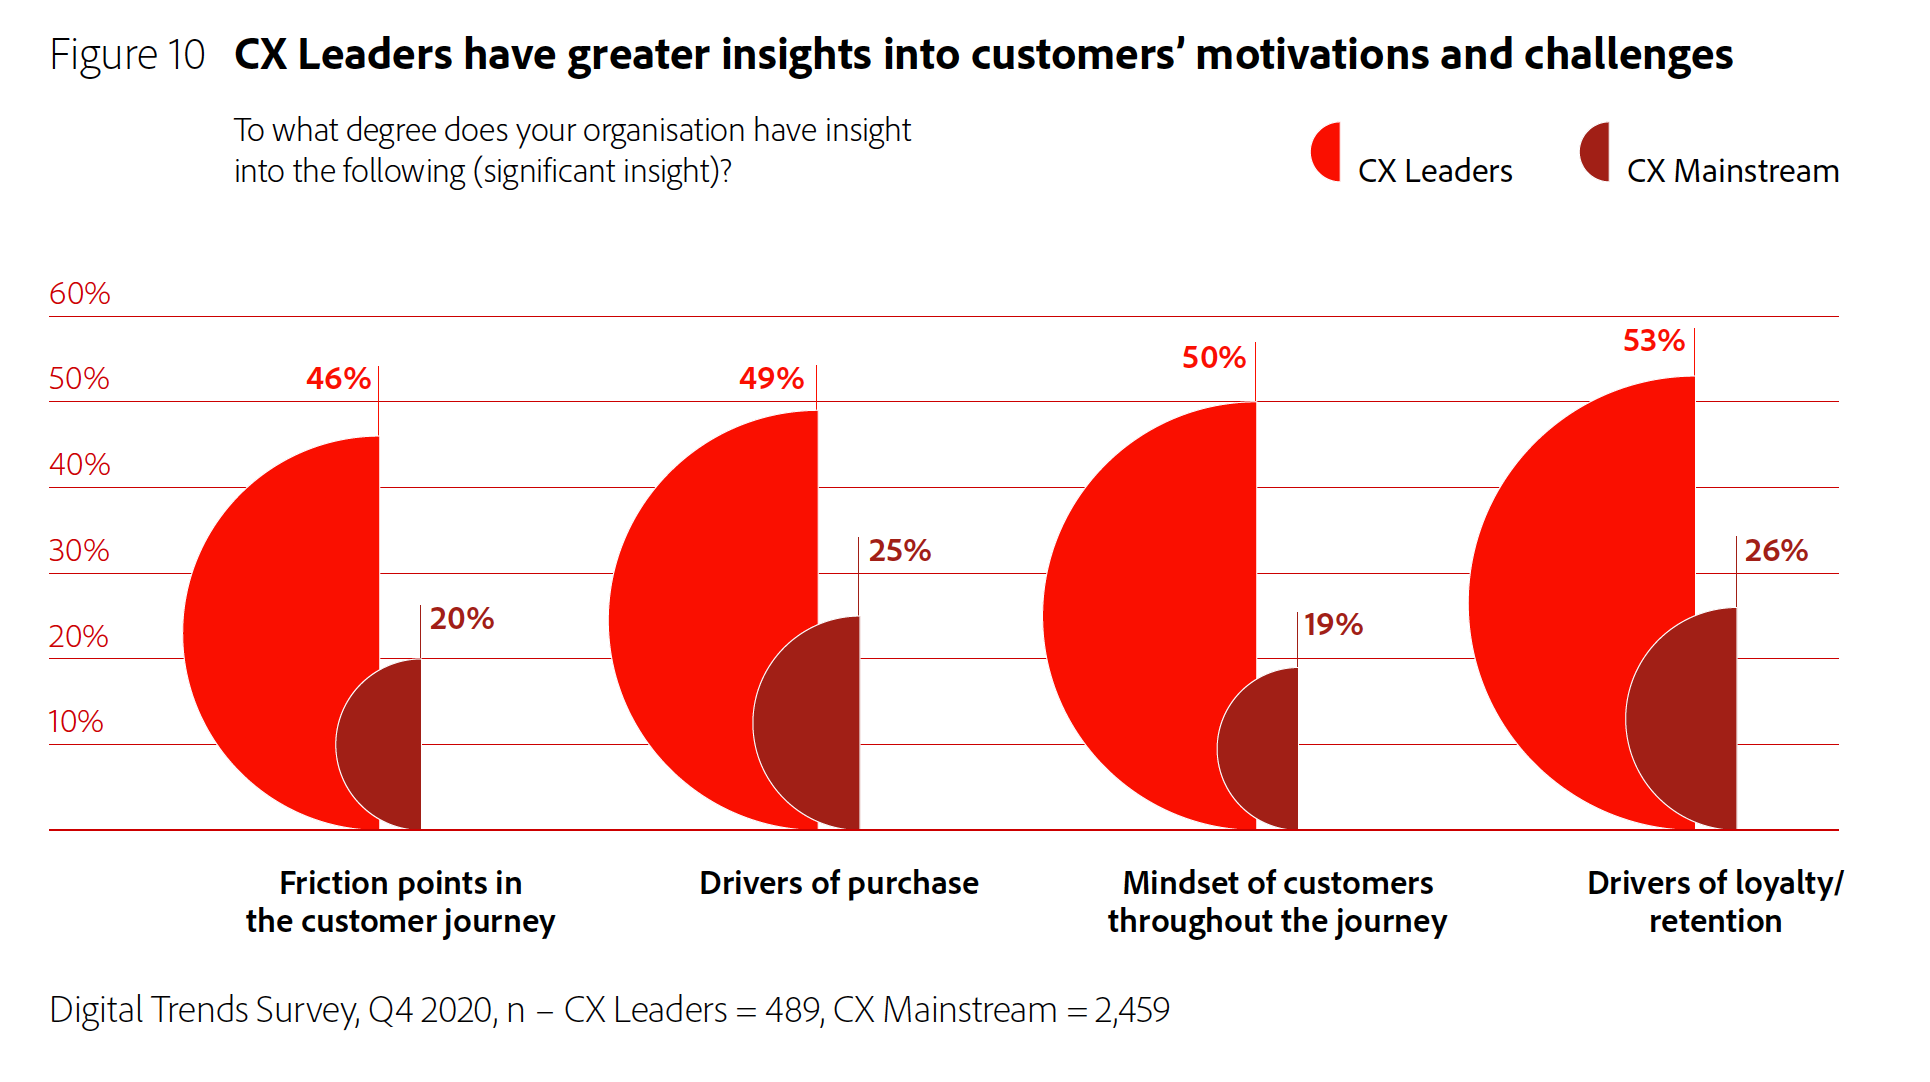 Figure 10: CX Leaders have greater insights into customers' motivations and challenges.